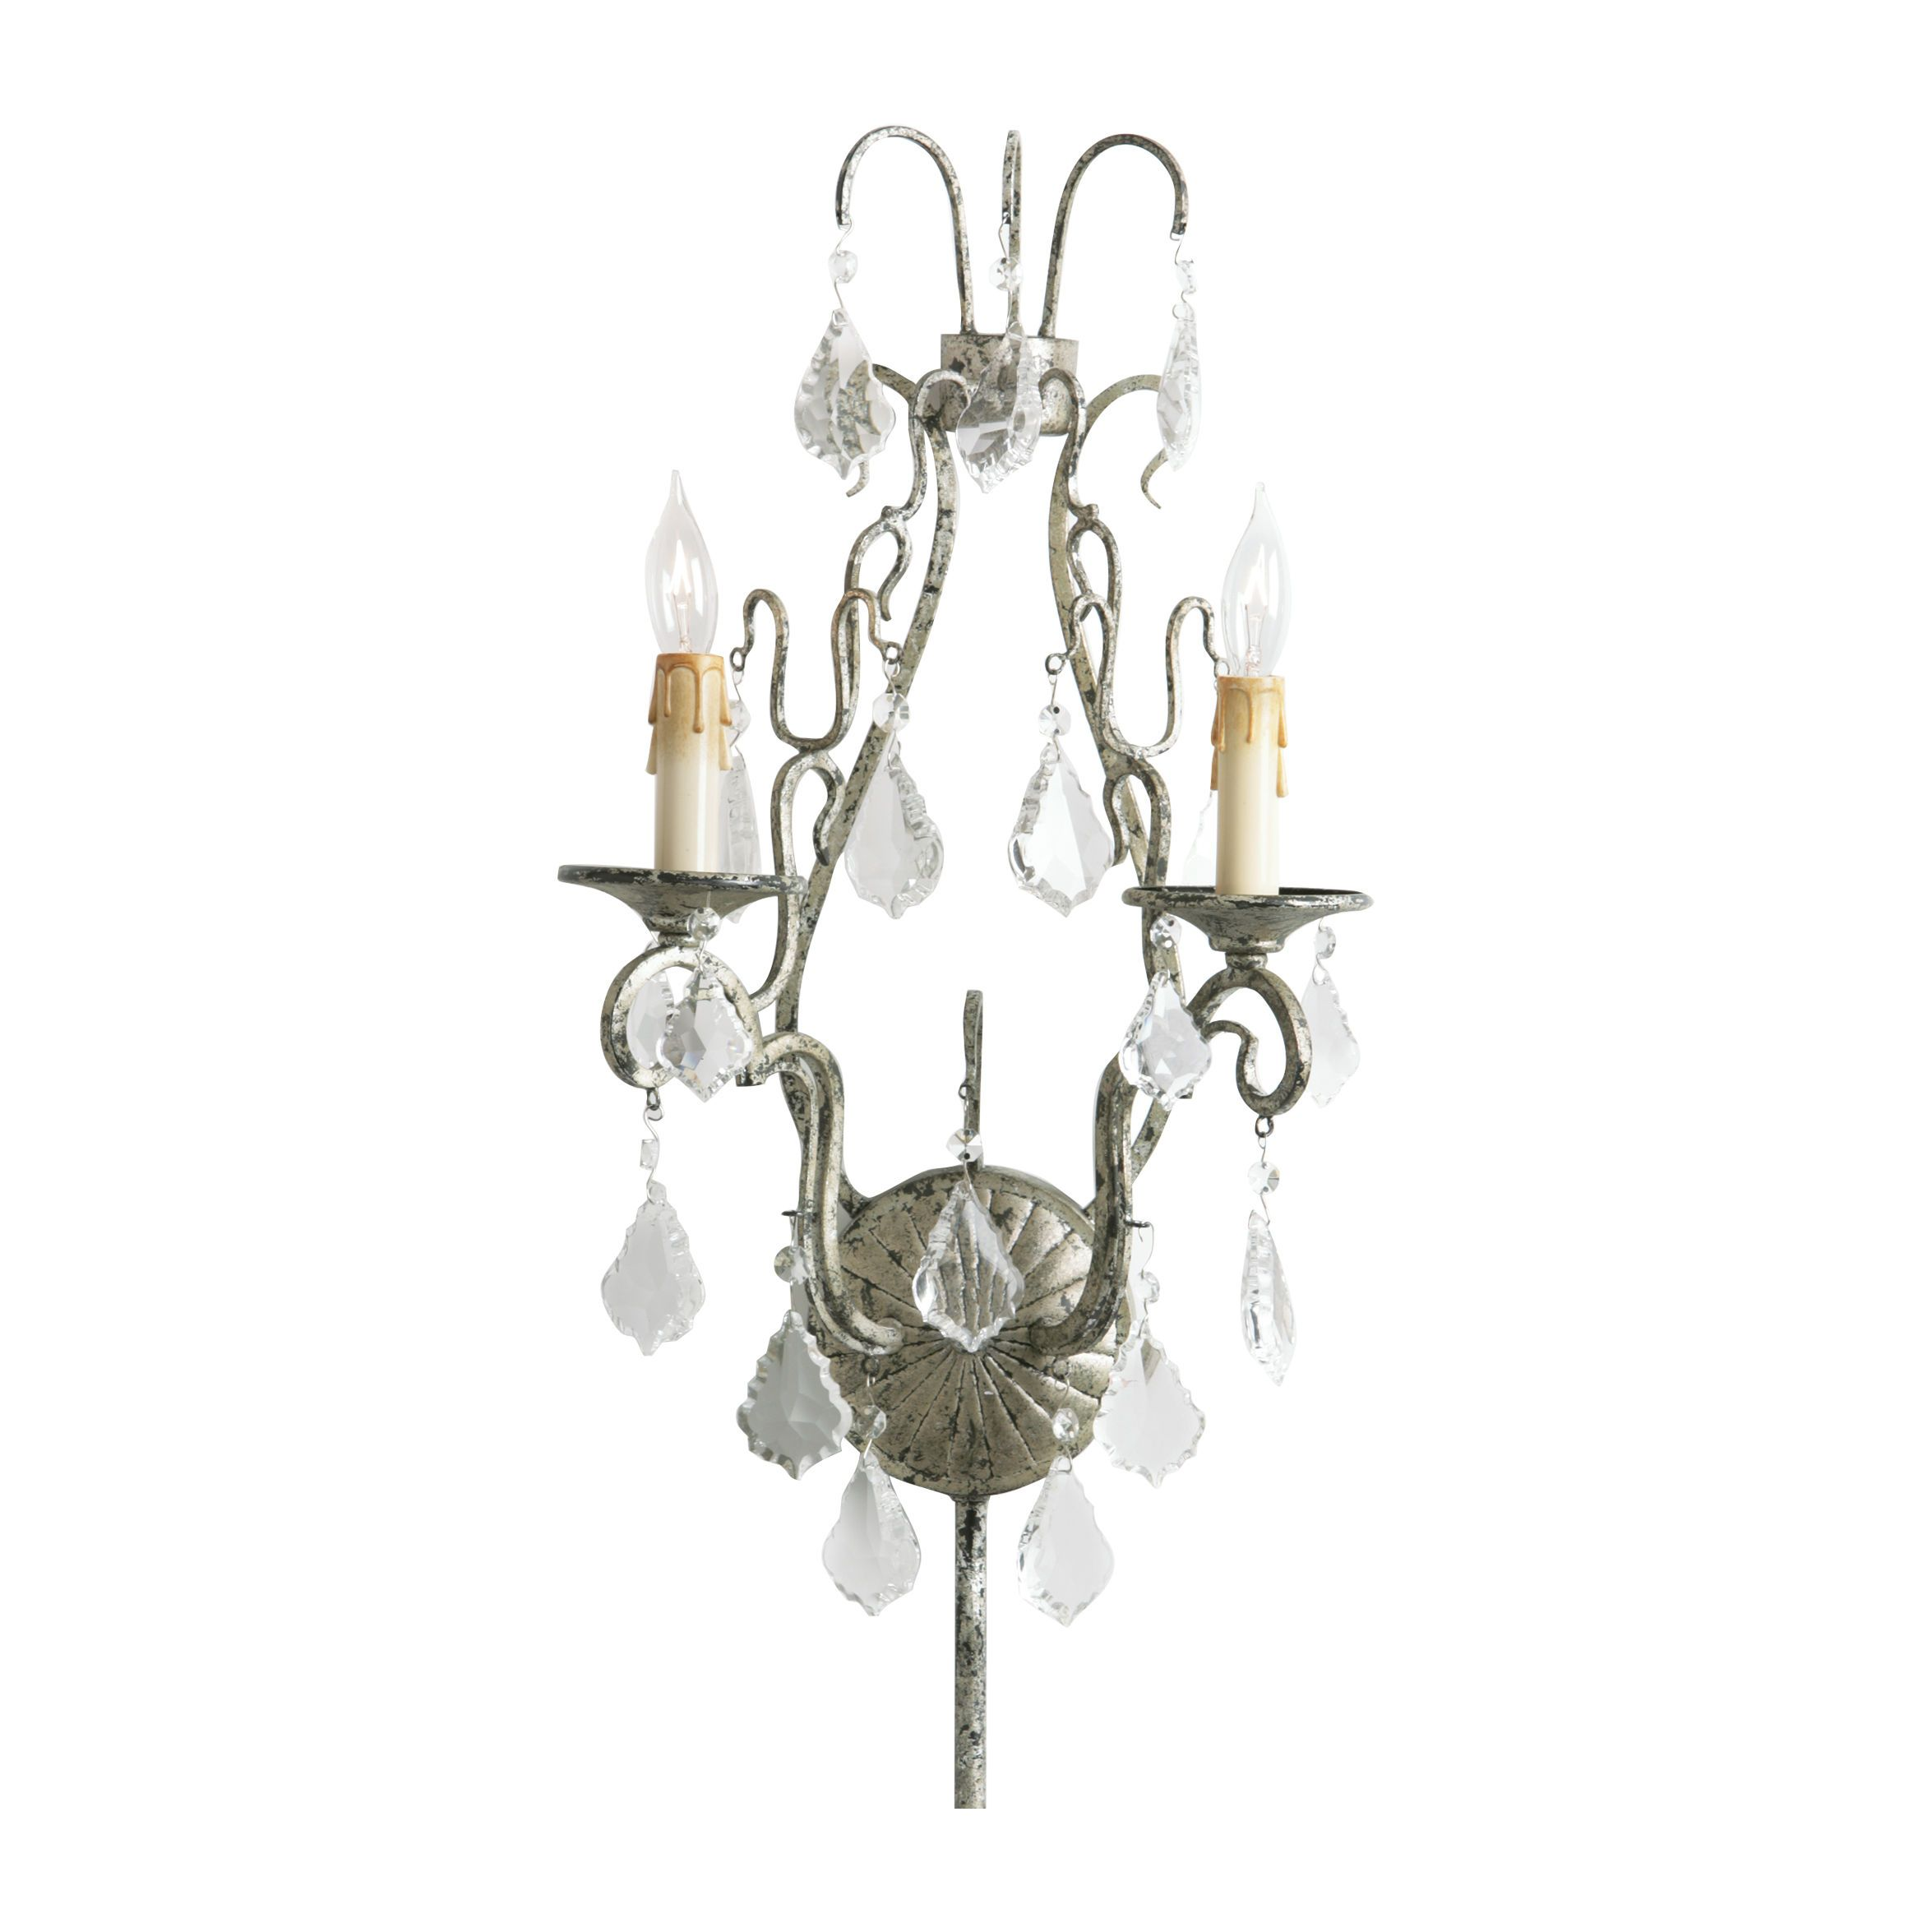 Olympia Wall Sconce - Ethan Allen US